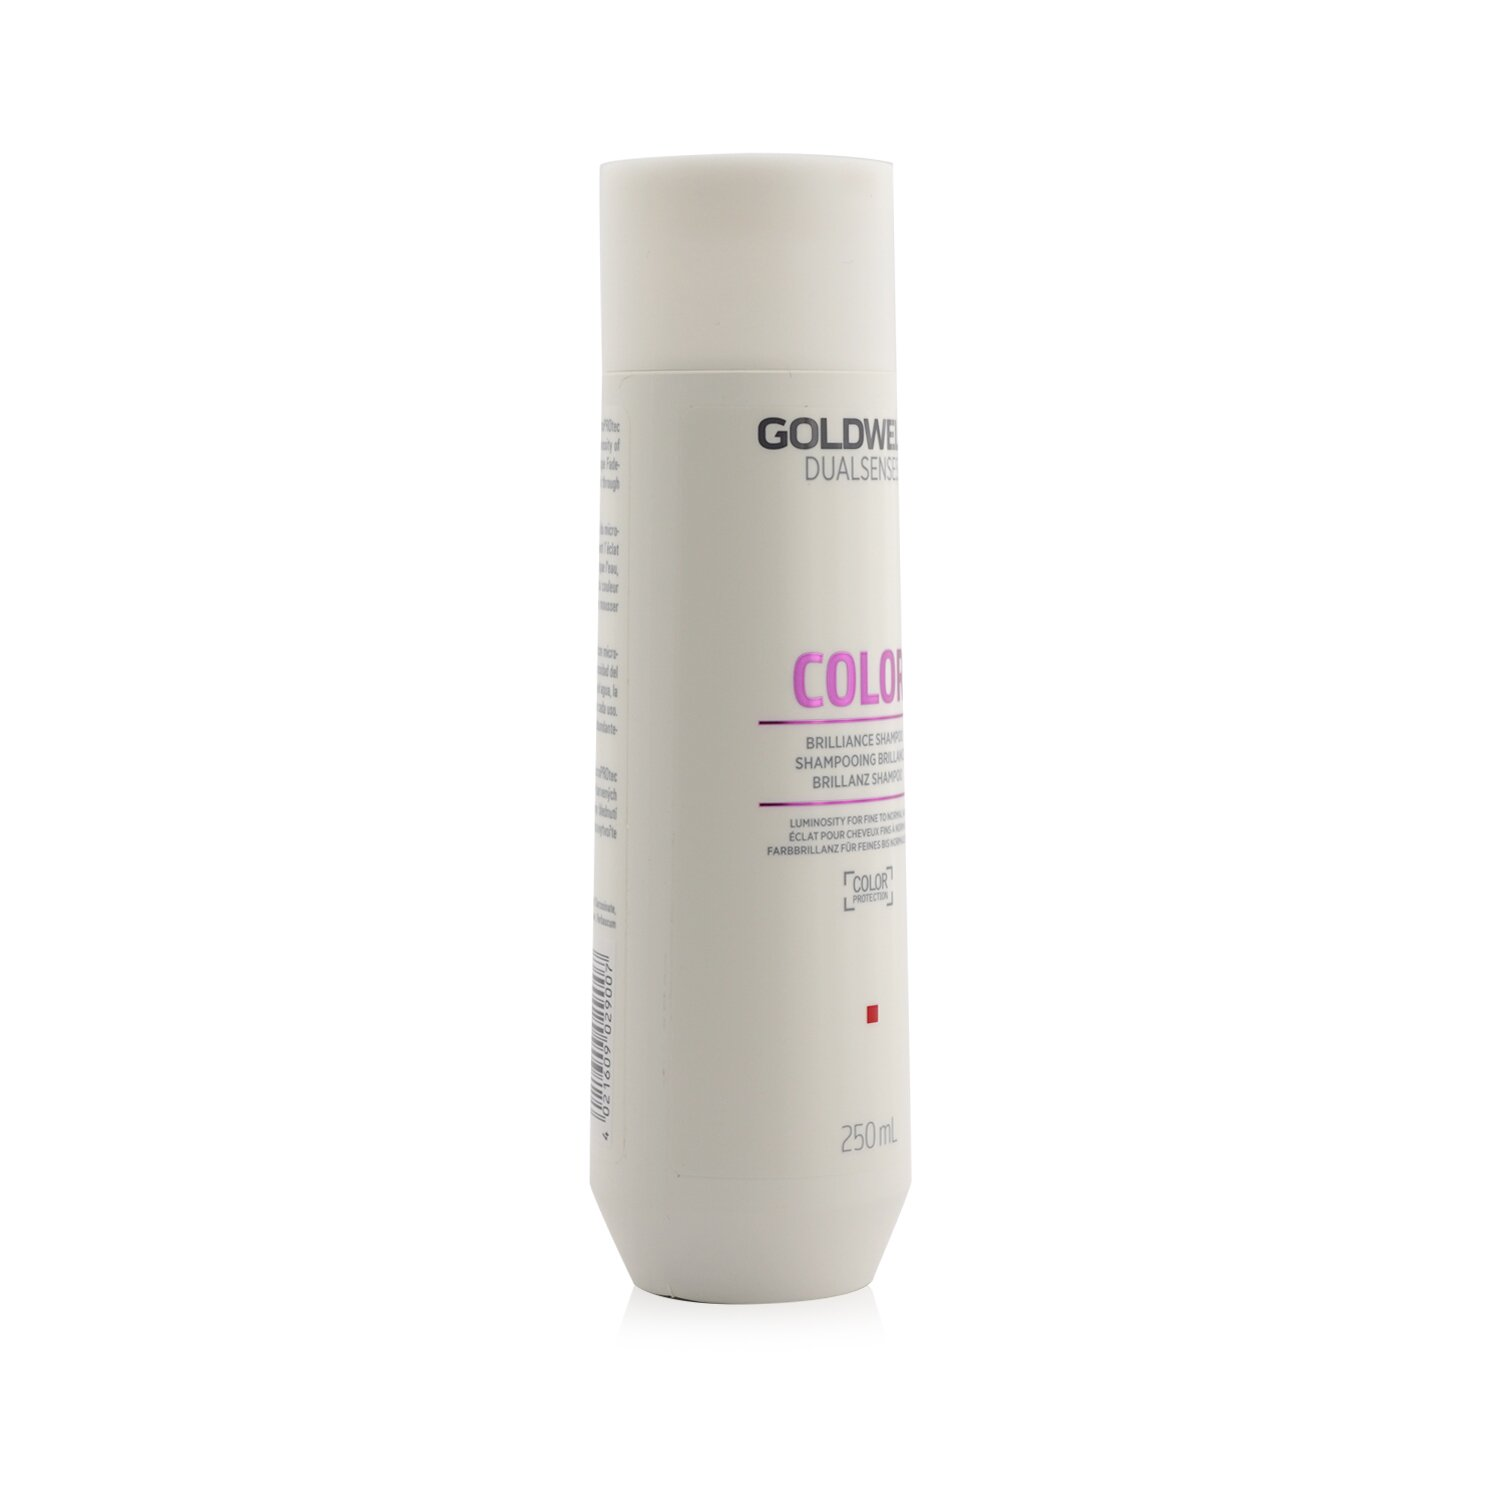 Details about Goldwell Dual Senses Color Brilliance Shampoo (For Fine Hair)  250ml